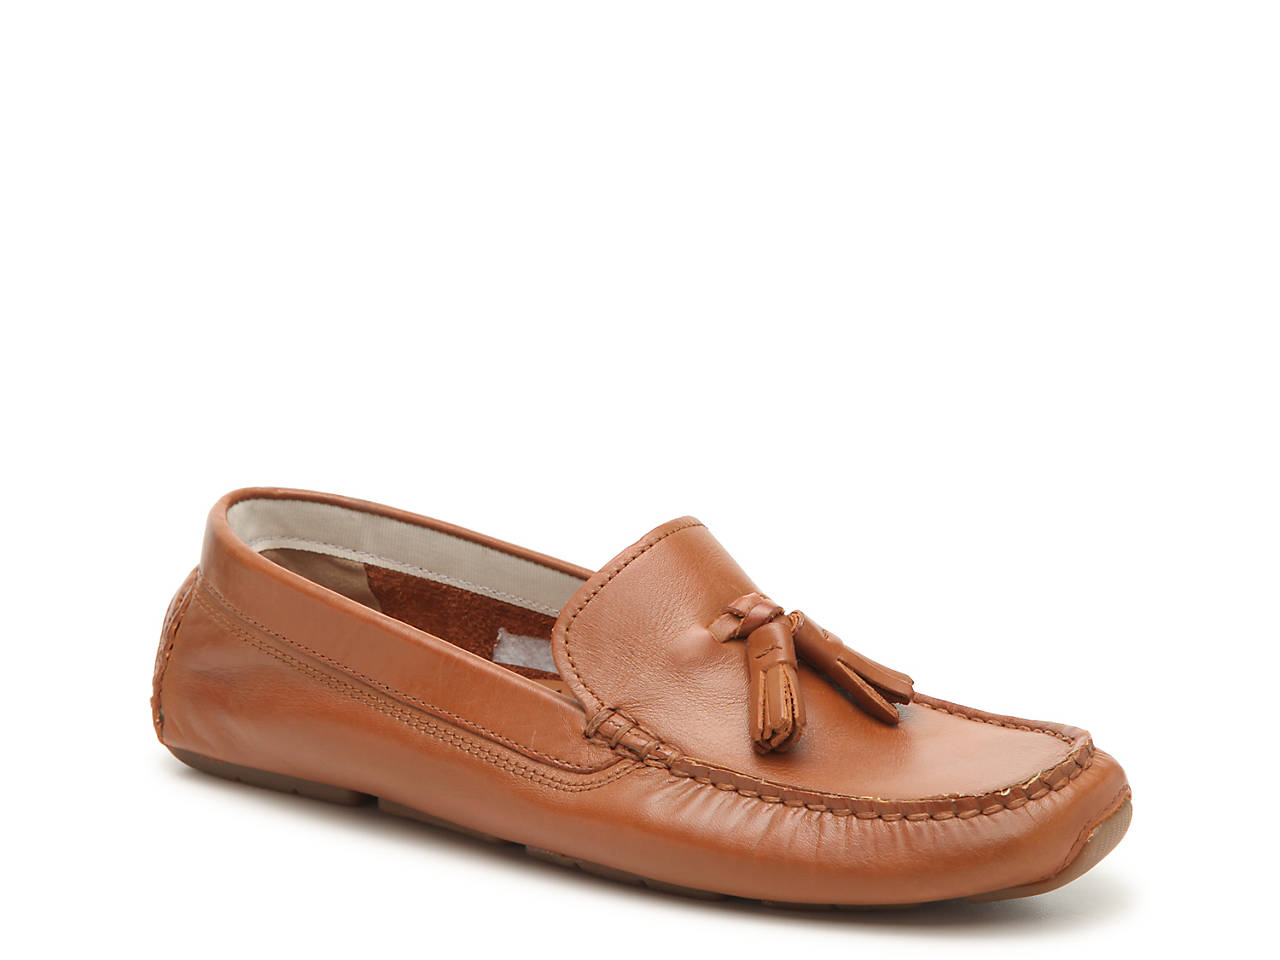 b1a2b43ca65 Cole Haan Rodeo Loafer Women s Shoes